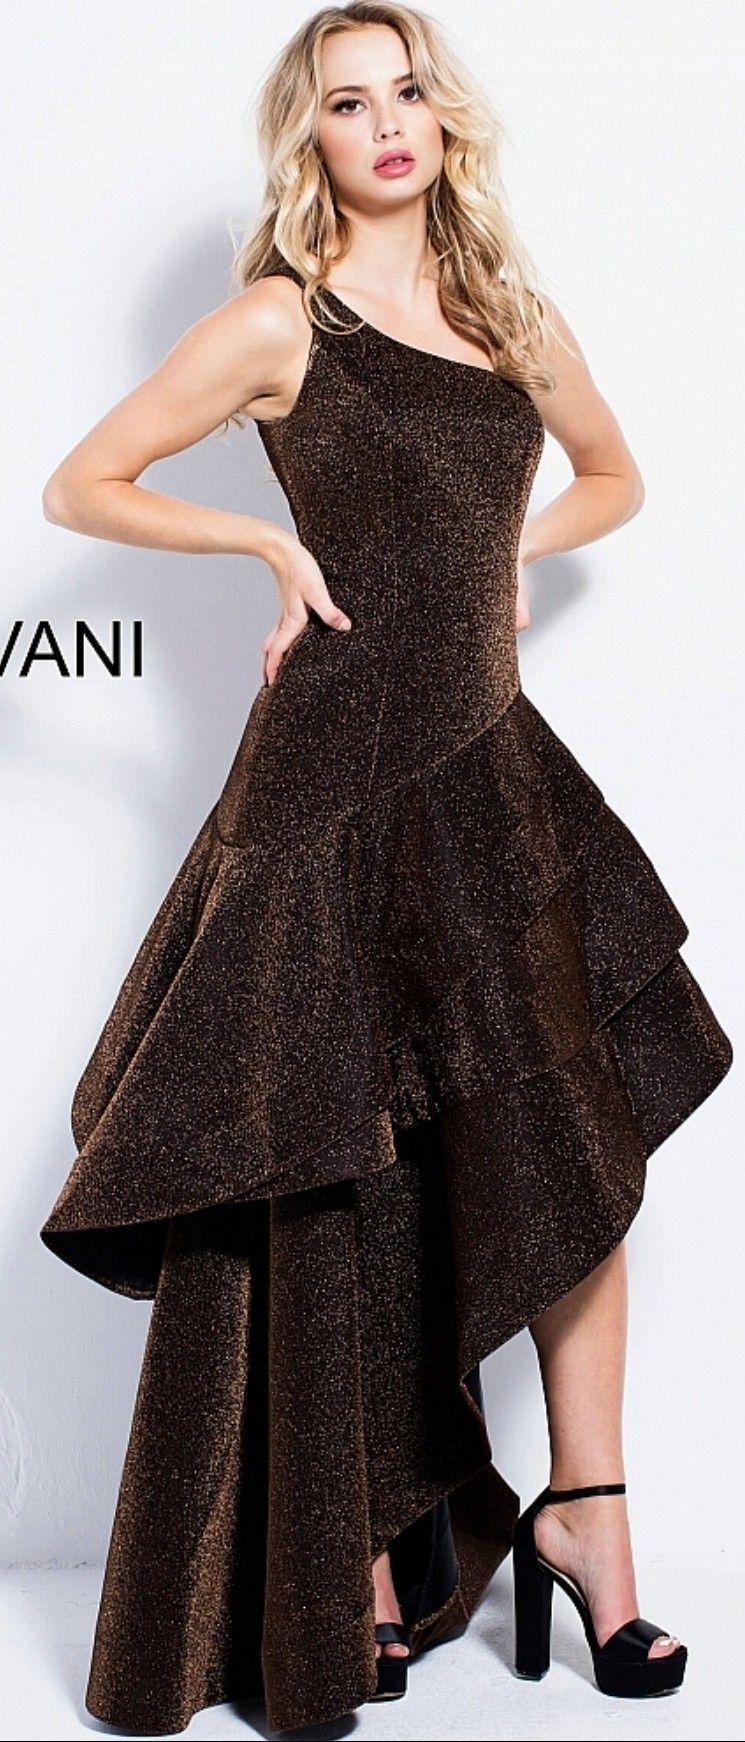 Jovani in chocolate brown double angular hilow pleated ruffled